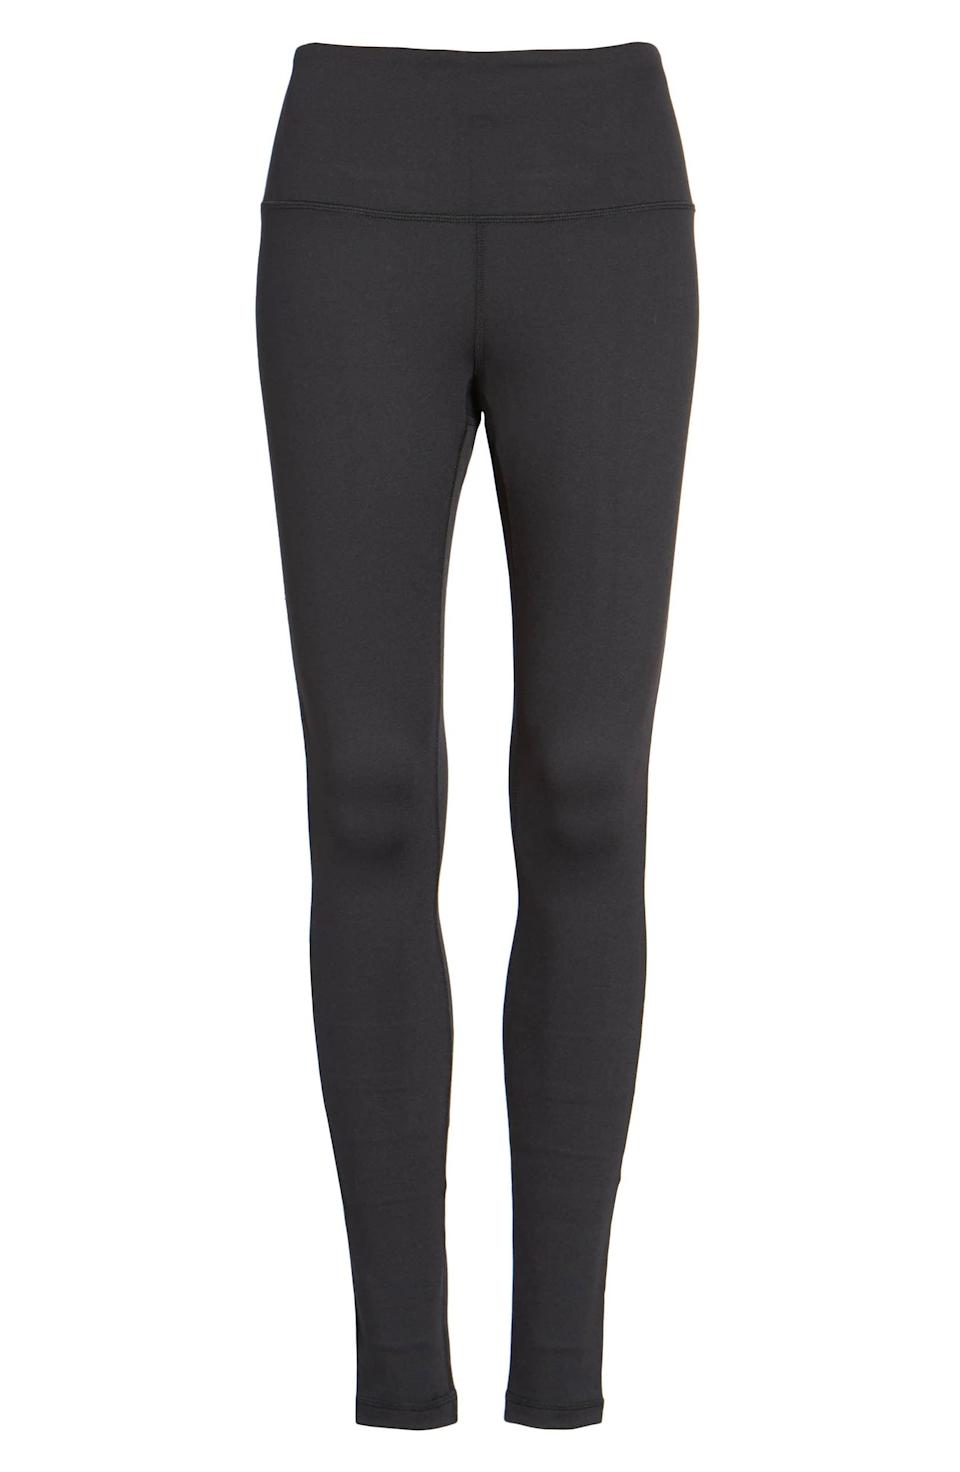 """<strong><h3>Zella: The Essential Legging</h3></strong><br>Few legging brands see as much public praise as Zella. The Live In high-waist leggings tout moisture-wicking technology great for running at the gym or running errands.<br><br><strong>The hype:</strong> 4.7 out of 5 stars and 7,100 reviews on Nordstrom<br><br><strong>What they're saying:</strong> """"These leggings really live up to their """"live in"""" name. They are so comfortable, I didn't want to take them off! (I actually wore them two days in a row.) The material is super buttery soft and thicker so you don't have to worry about underwear showing through. Also, the little pocket in the front is perfect for keys, smaller phones (no Iphone7 plus), cash—basically anything you don't want to/can't carry. I have heard complaints about them being too hot, but I have worn them in 90+ degree weather and didn't feel like they were uncomfortable or unbearably hot. They are super durable and I am sure they will last me a long time."""" - BRD975, Nordstrom Review<br><br><strong>Zella</strong> Live In High Waist Leggings, $, available at <a href=""""https://go.skimresources.com/?id=30283X879131&url=https%3A%2F%2Fwww.nordstrom.com%2Fs%2Fzella-live-in-high-waist-leggings%2F4312529"""" rel=""""nofollow noopener"""" target=""""_blank"""" data-ylk=""""slk:Nordstrom"""" class=""""link rapid-noclick-resp"""">Nordstrom</a>"""